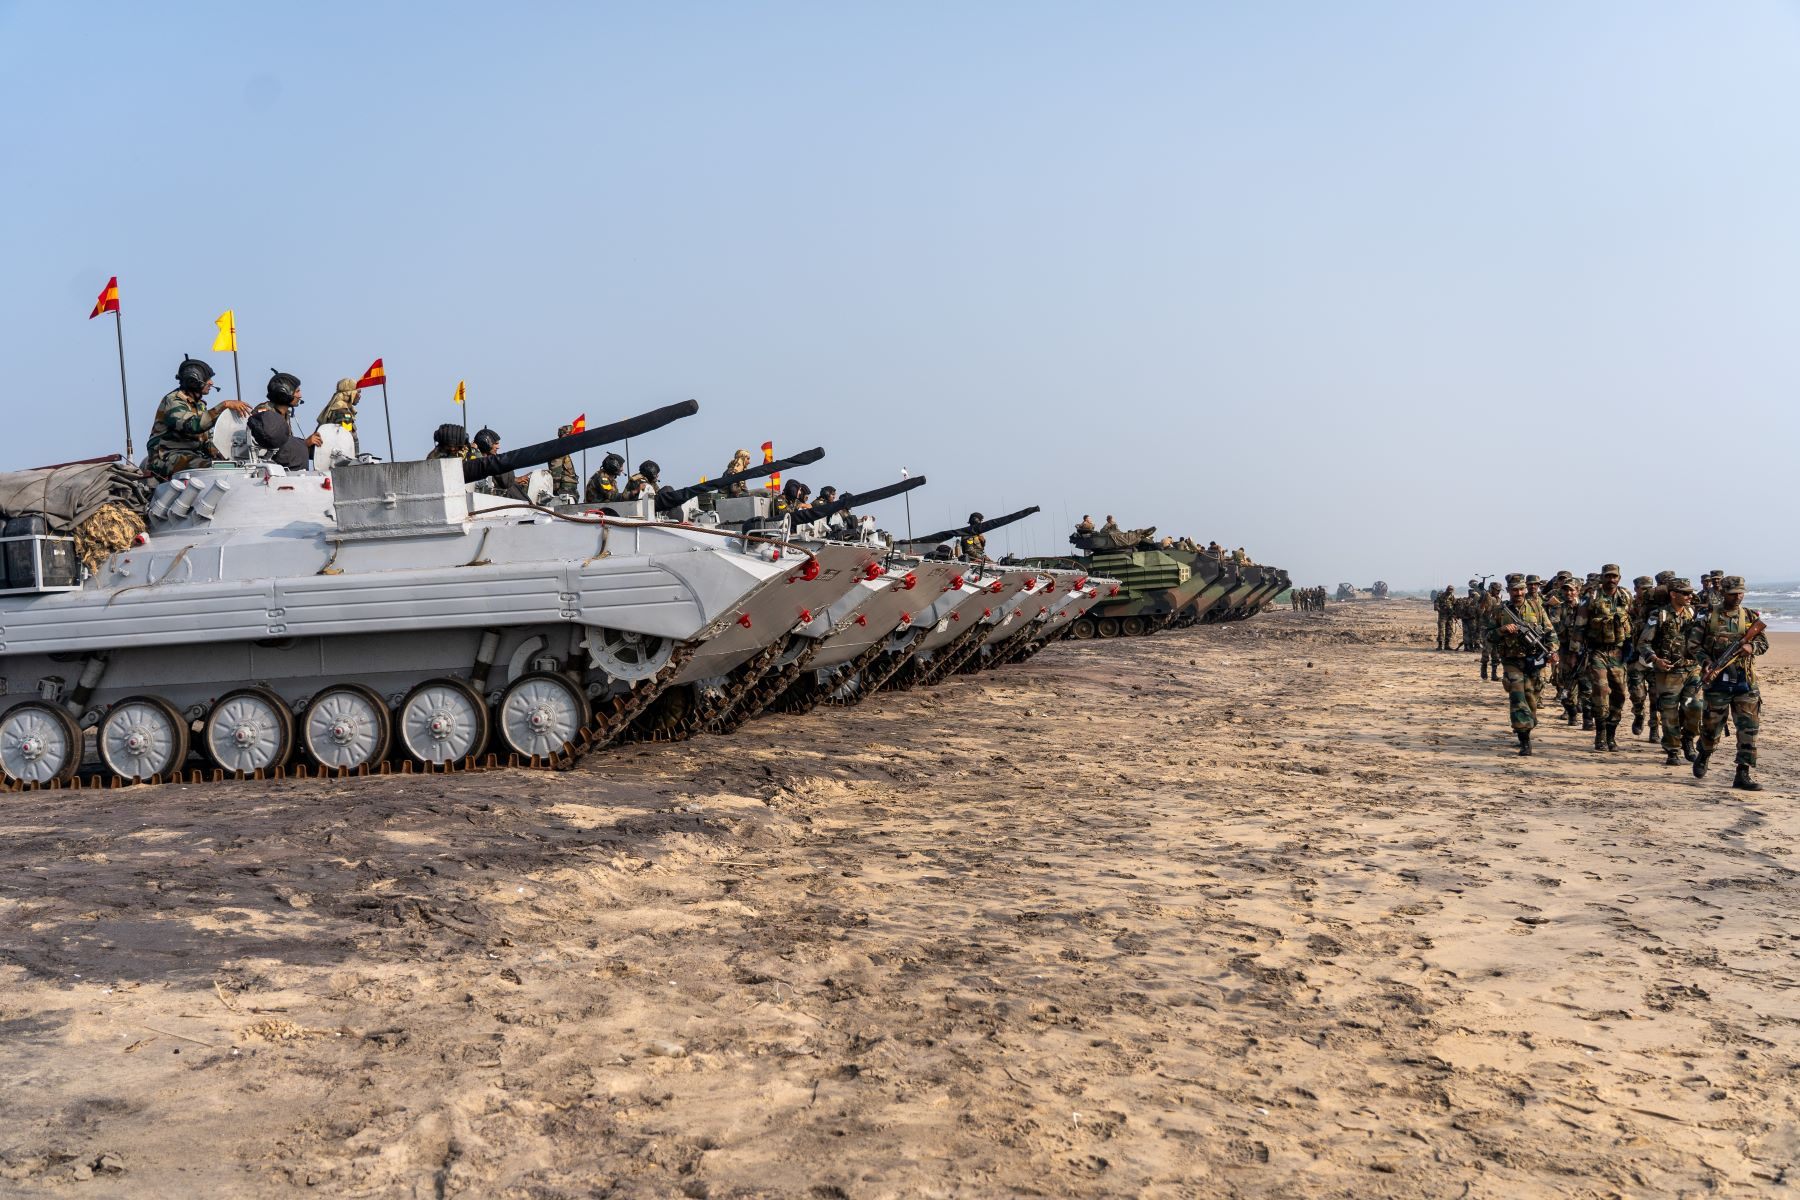 U.S. Military Makes Bold Statement in First-of-its-Kind Exercise with India